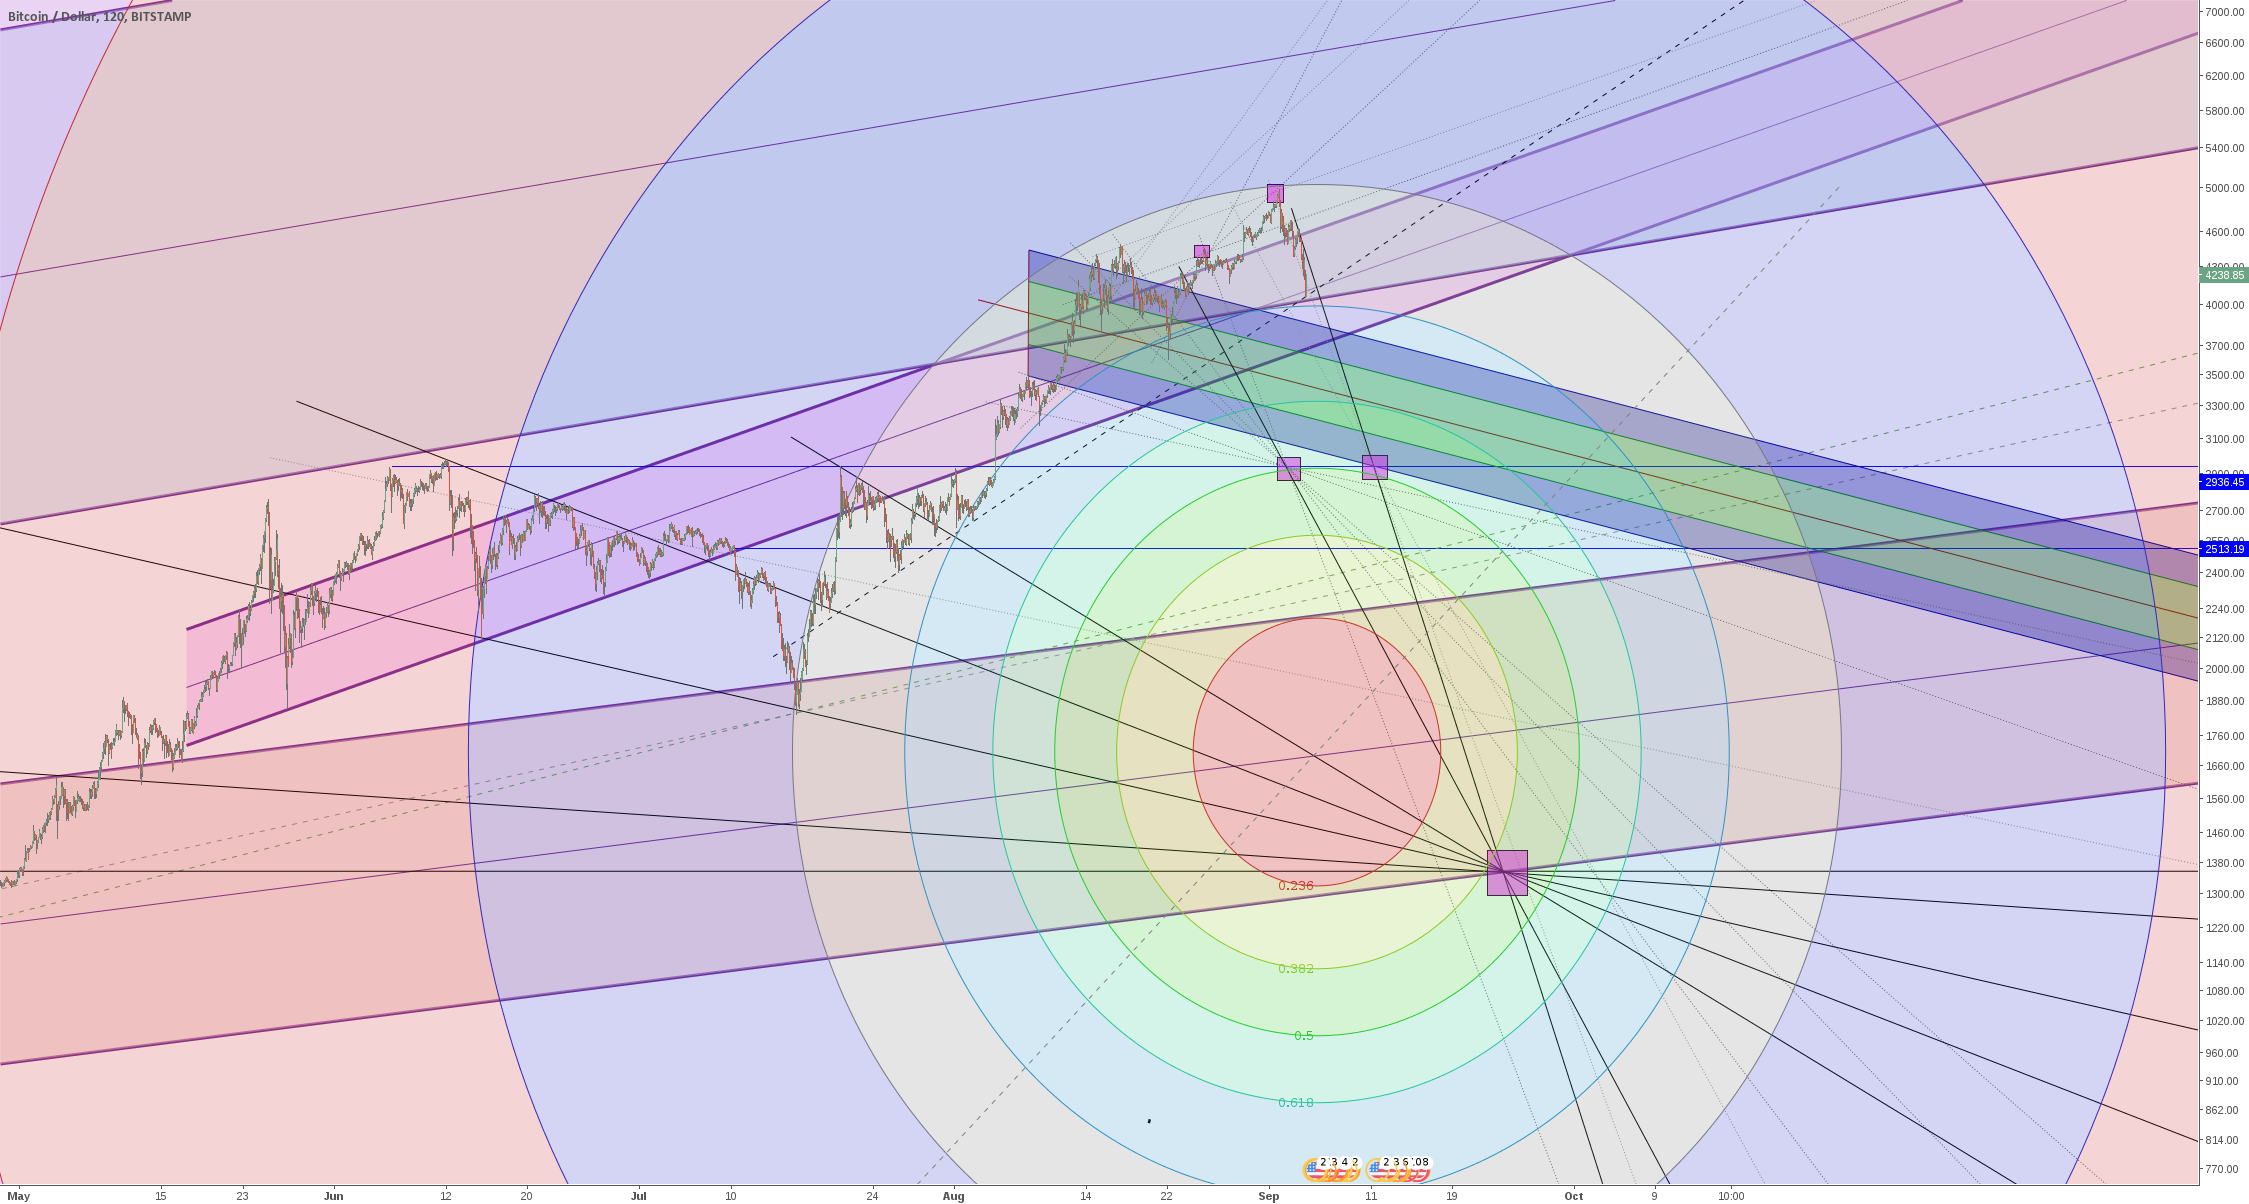 Bitcoin - trying to visualize the magnetism